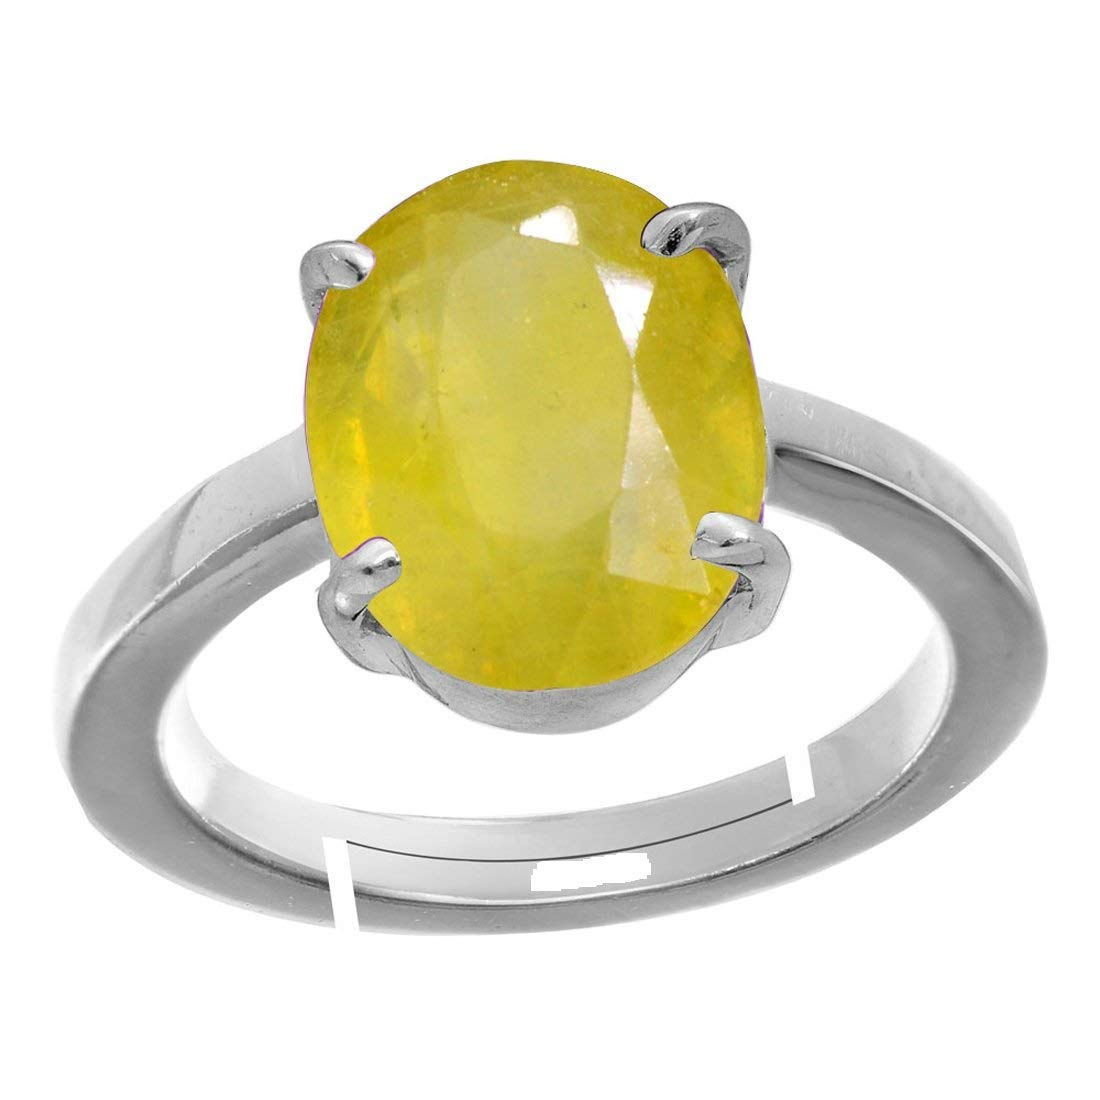 Gemstone Sterling Silver Adjustable Ring Men and Women Pukhraj Royalmart 10 Ratti Natural Yellow Sapphire